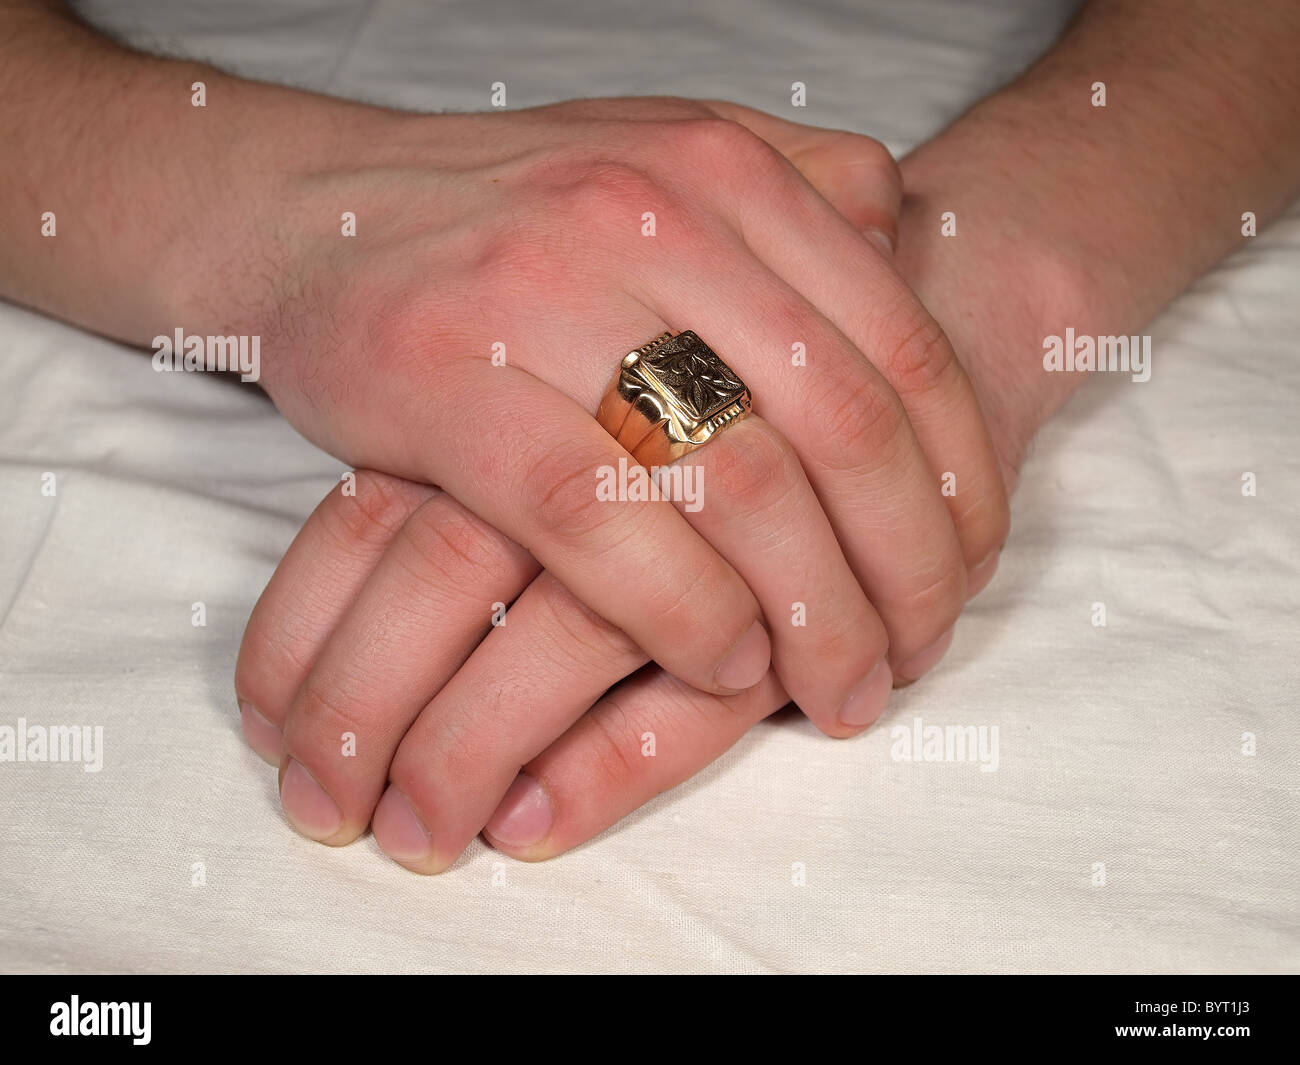 Gold Ring Hand Stock Photos & Gold Ring Hand Stock Images - Alamy